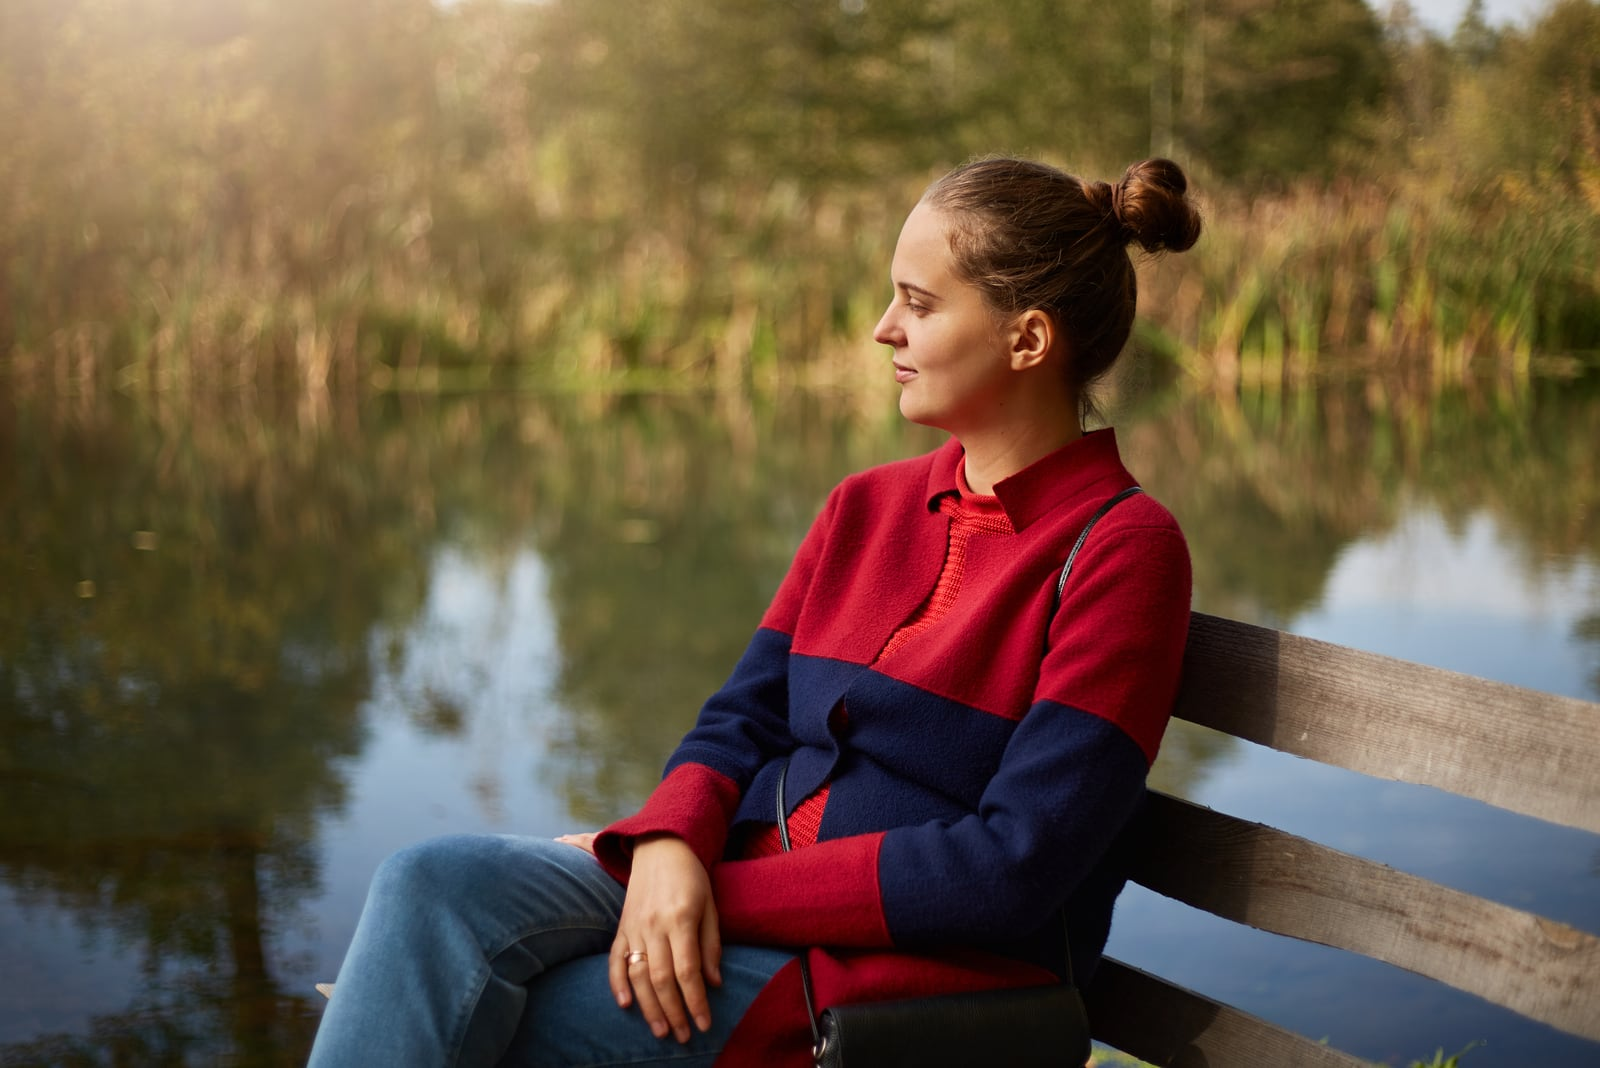 pensive woman sitting on wooden bench on bank of river